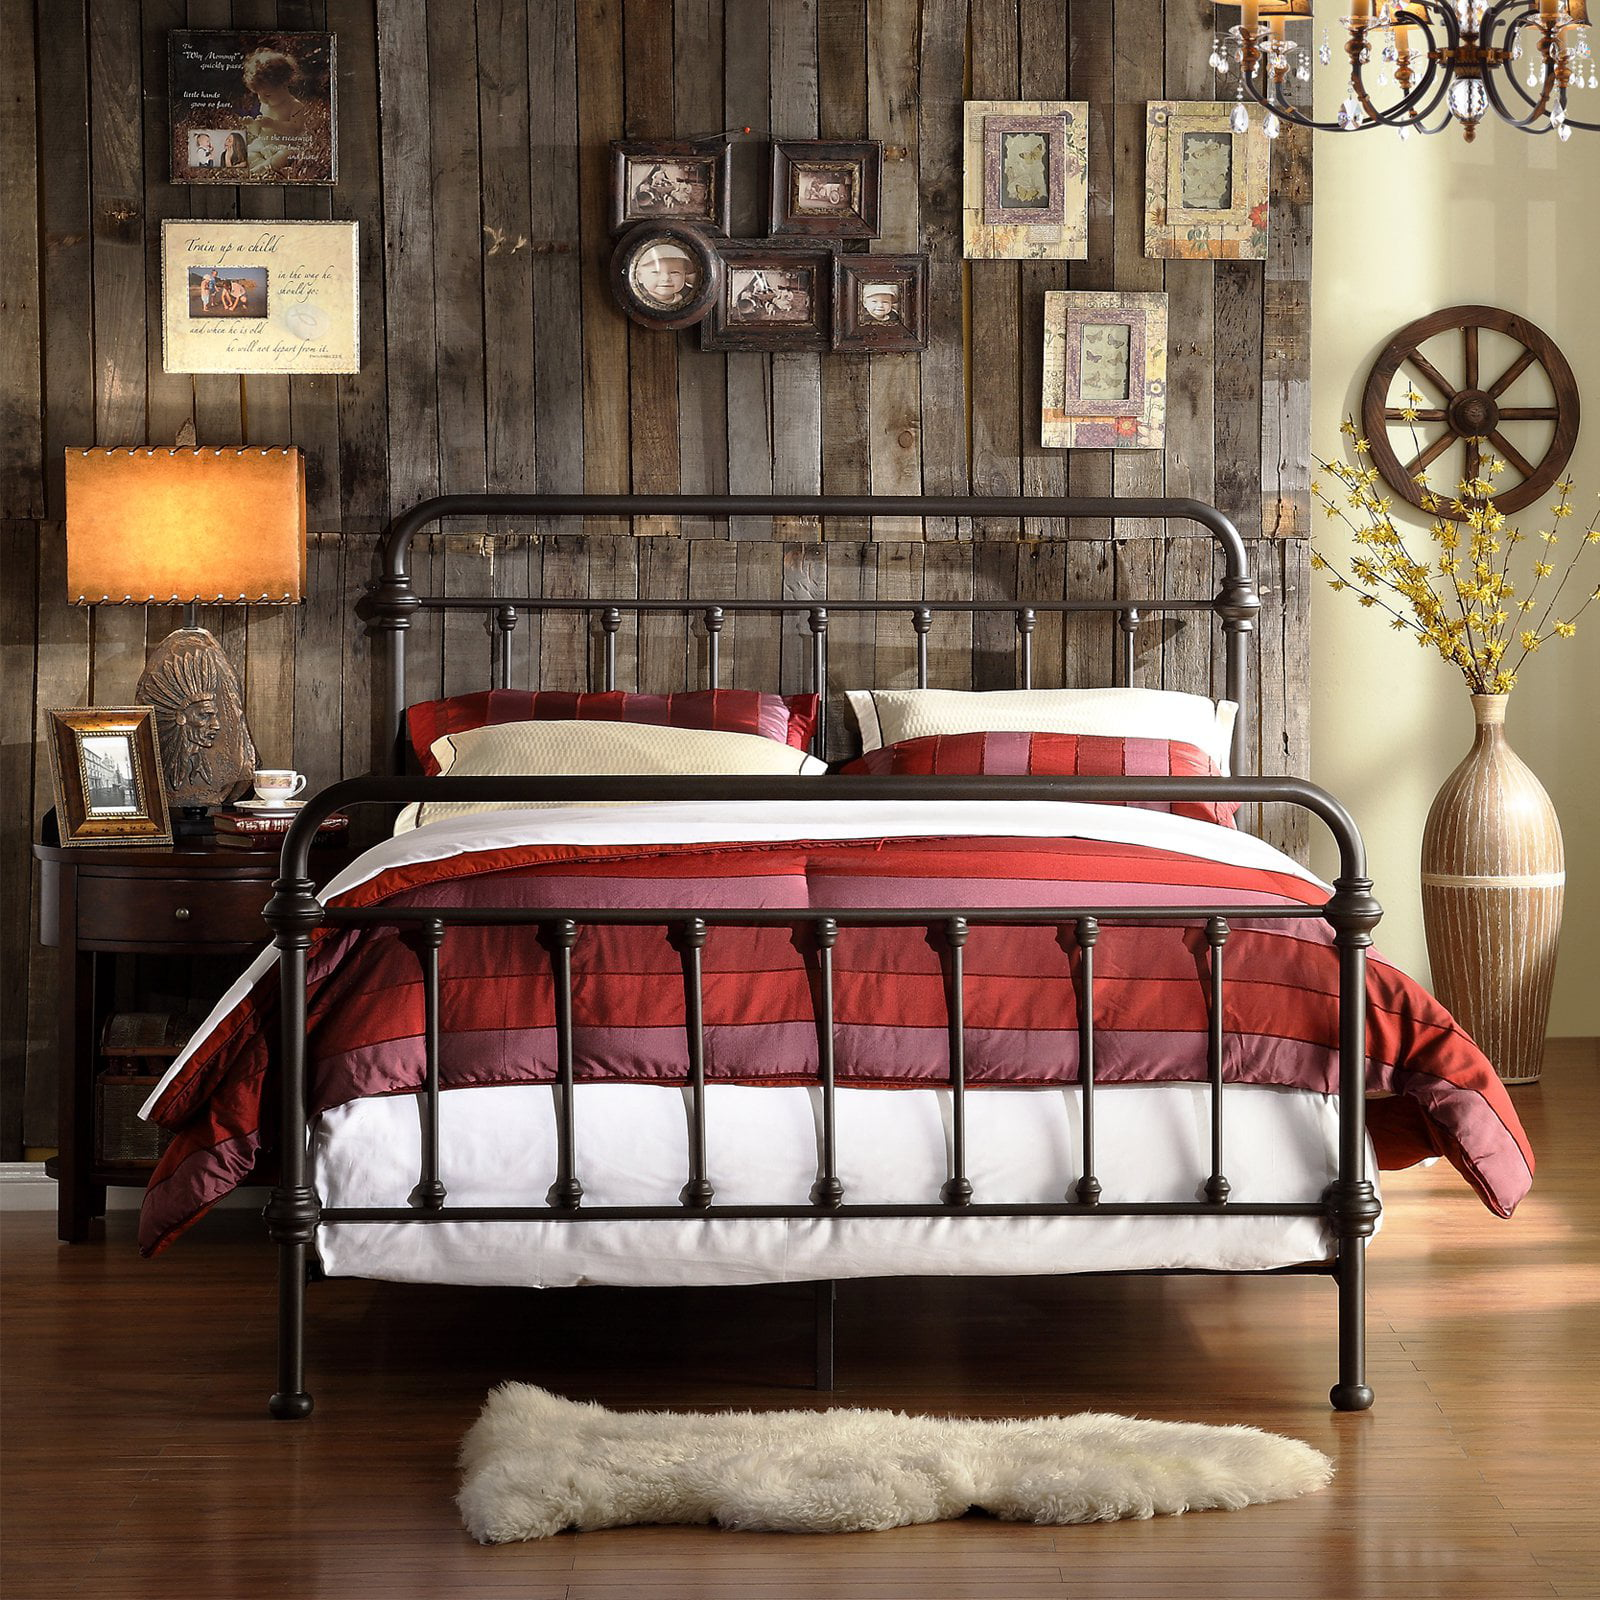 Weston Home Nottingham Metal Queen Bed Antique Dark Bronze Walmart Com Walmart Com